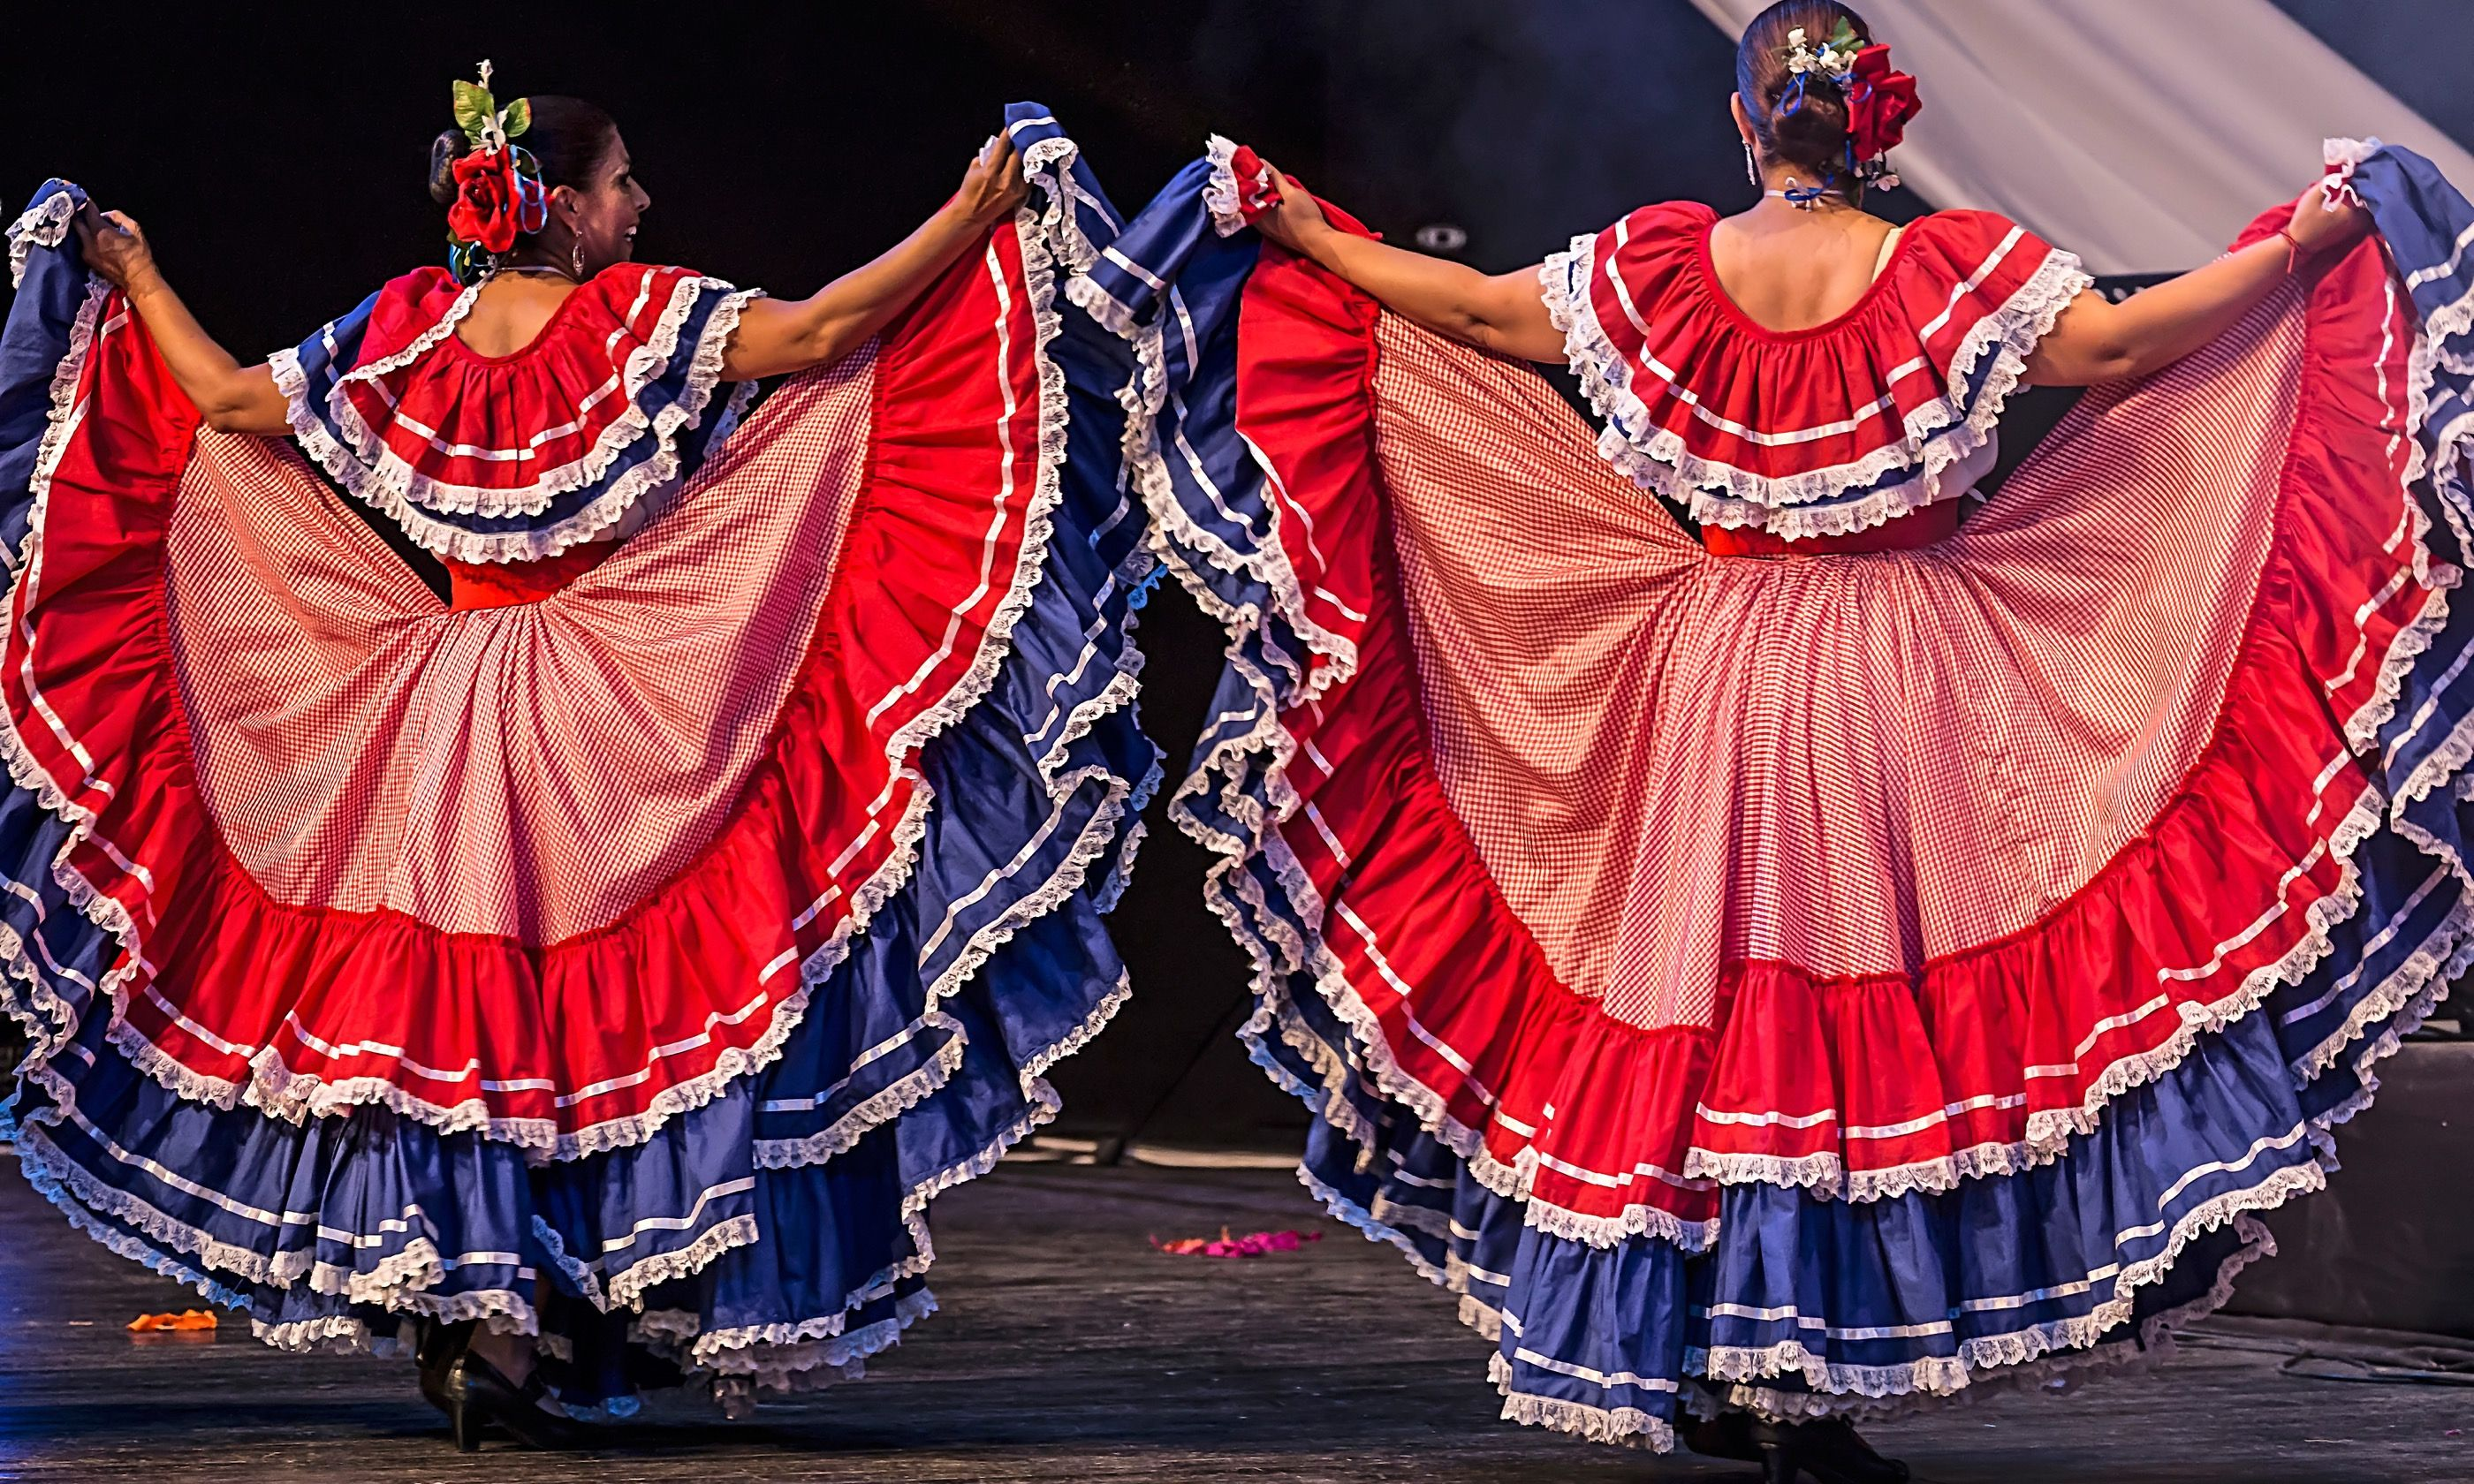 Fiesta time in Costa Rica (Dreamstime)